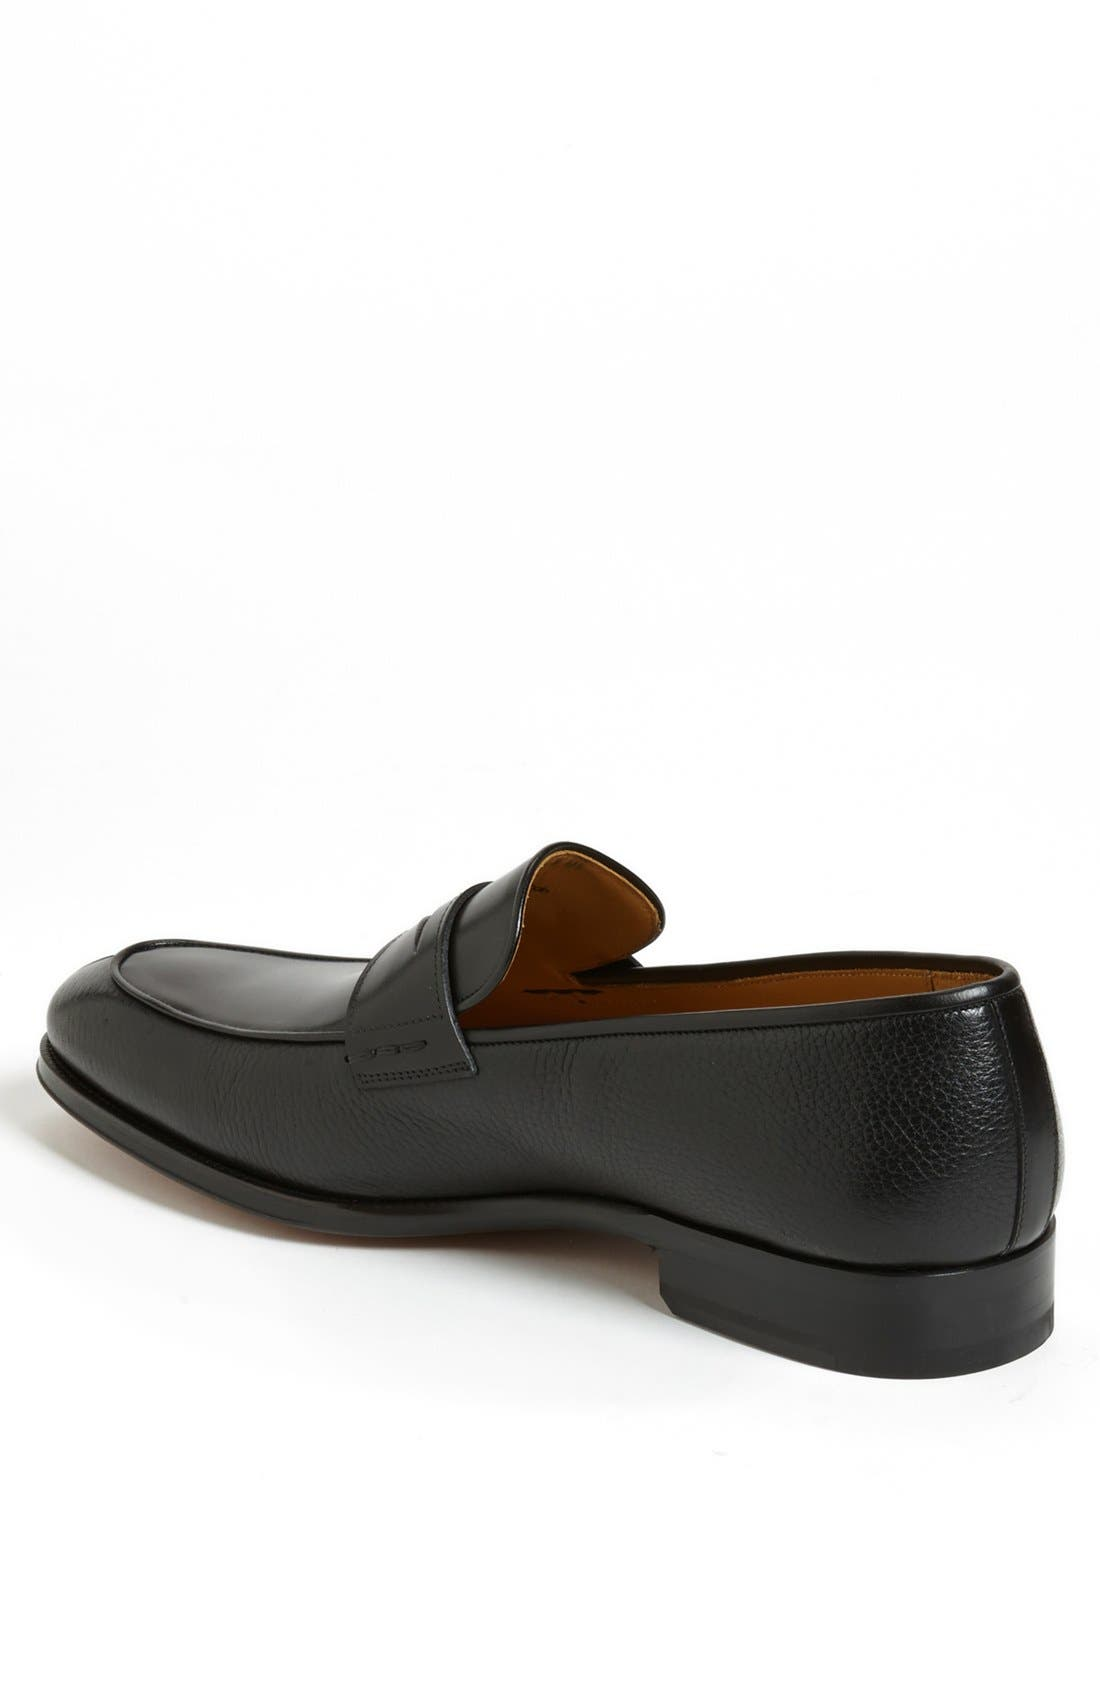 Alternate Image 2  - Magnanni 'Emilio' Penny Loafer